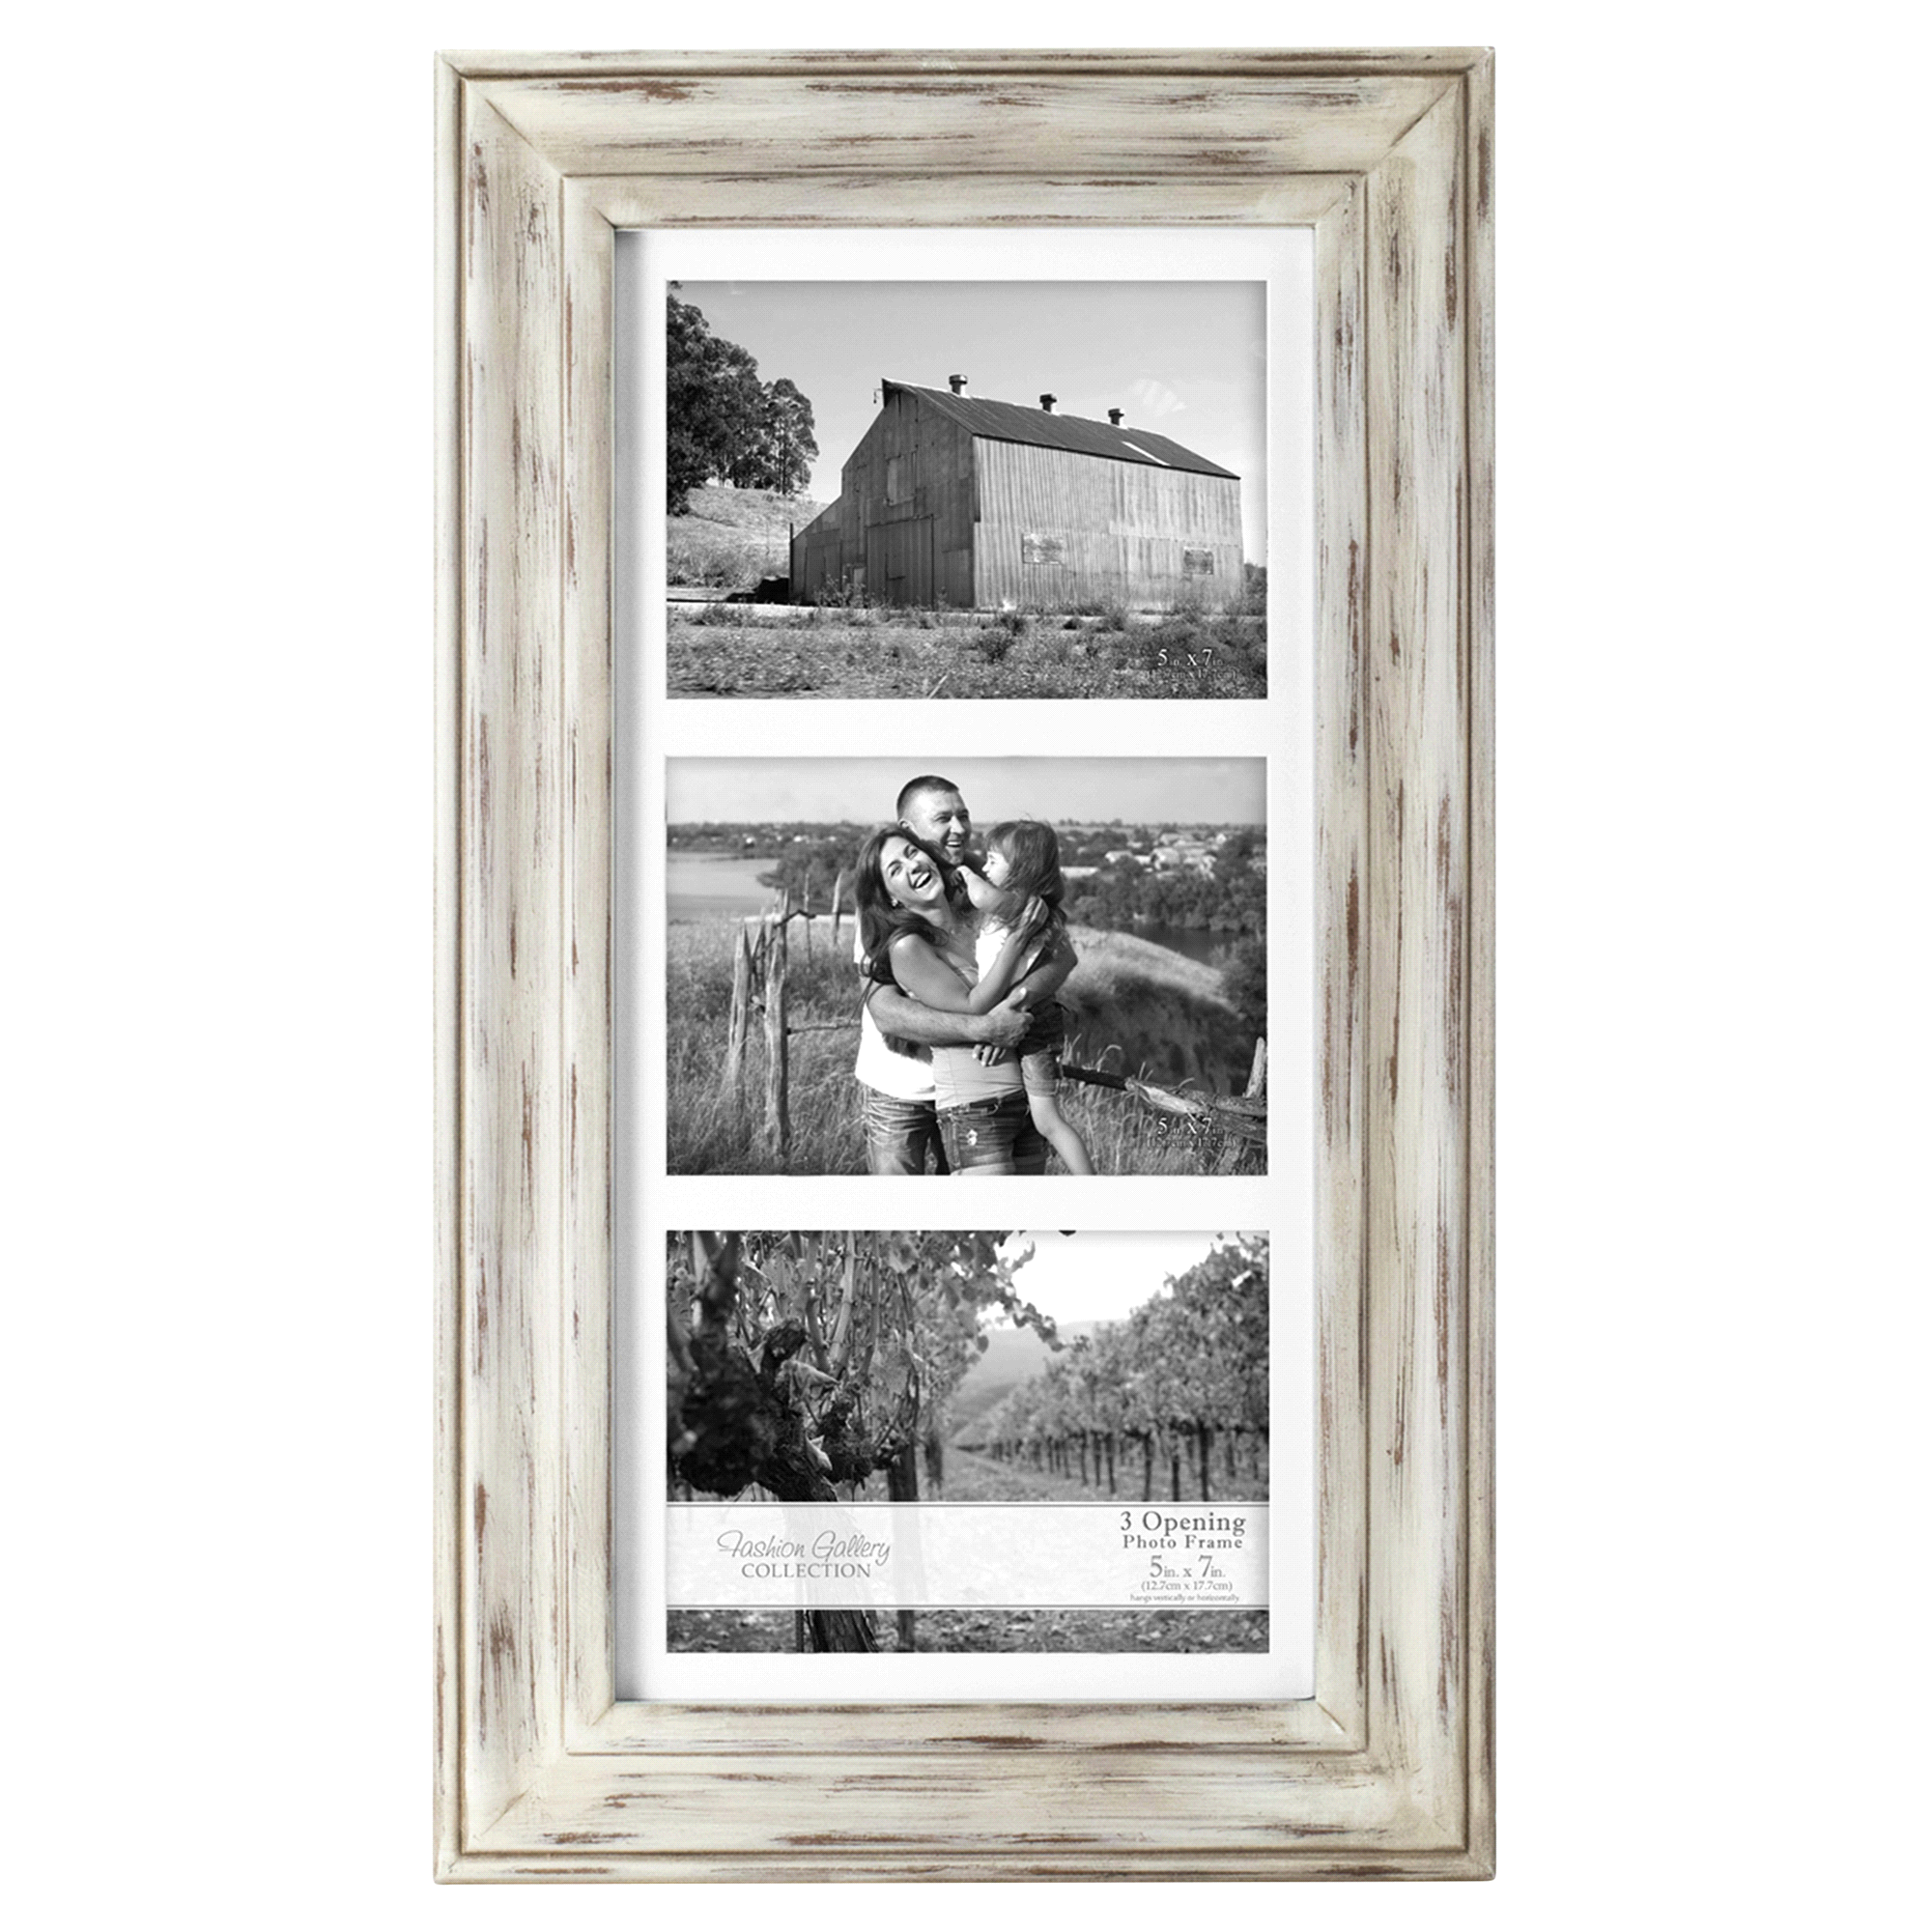 Malden Whitman 3 Openings 5 x 7 White Wash Picture Frame | Meijer.com